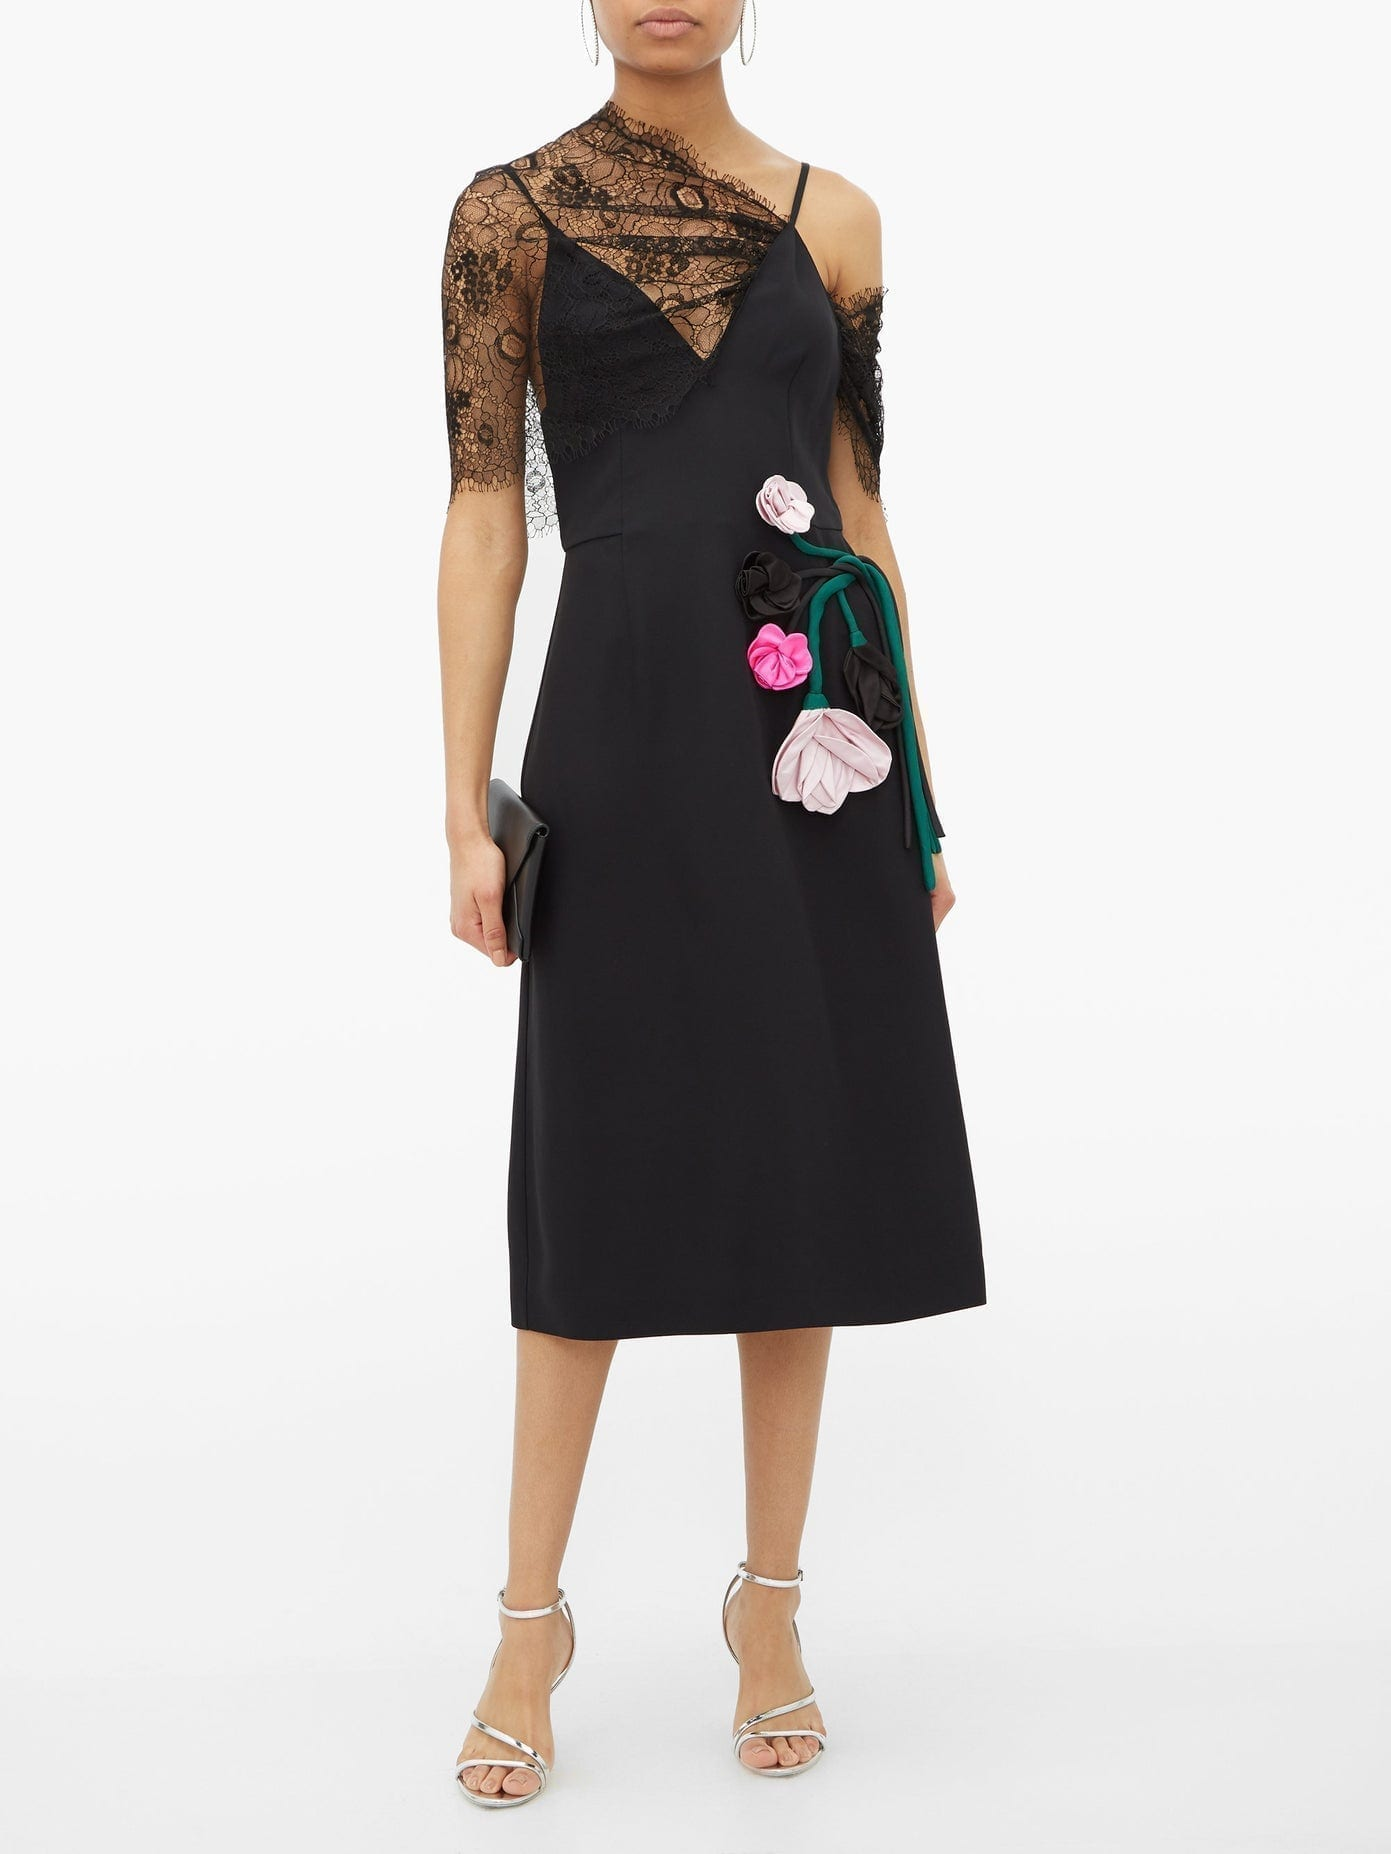 PRADA Rose-appliqué Lace-overlay Midi Dress